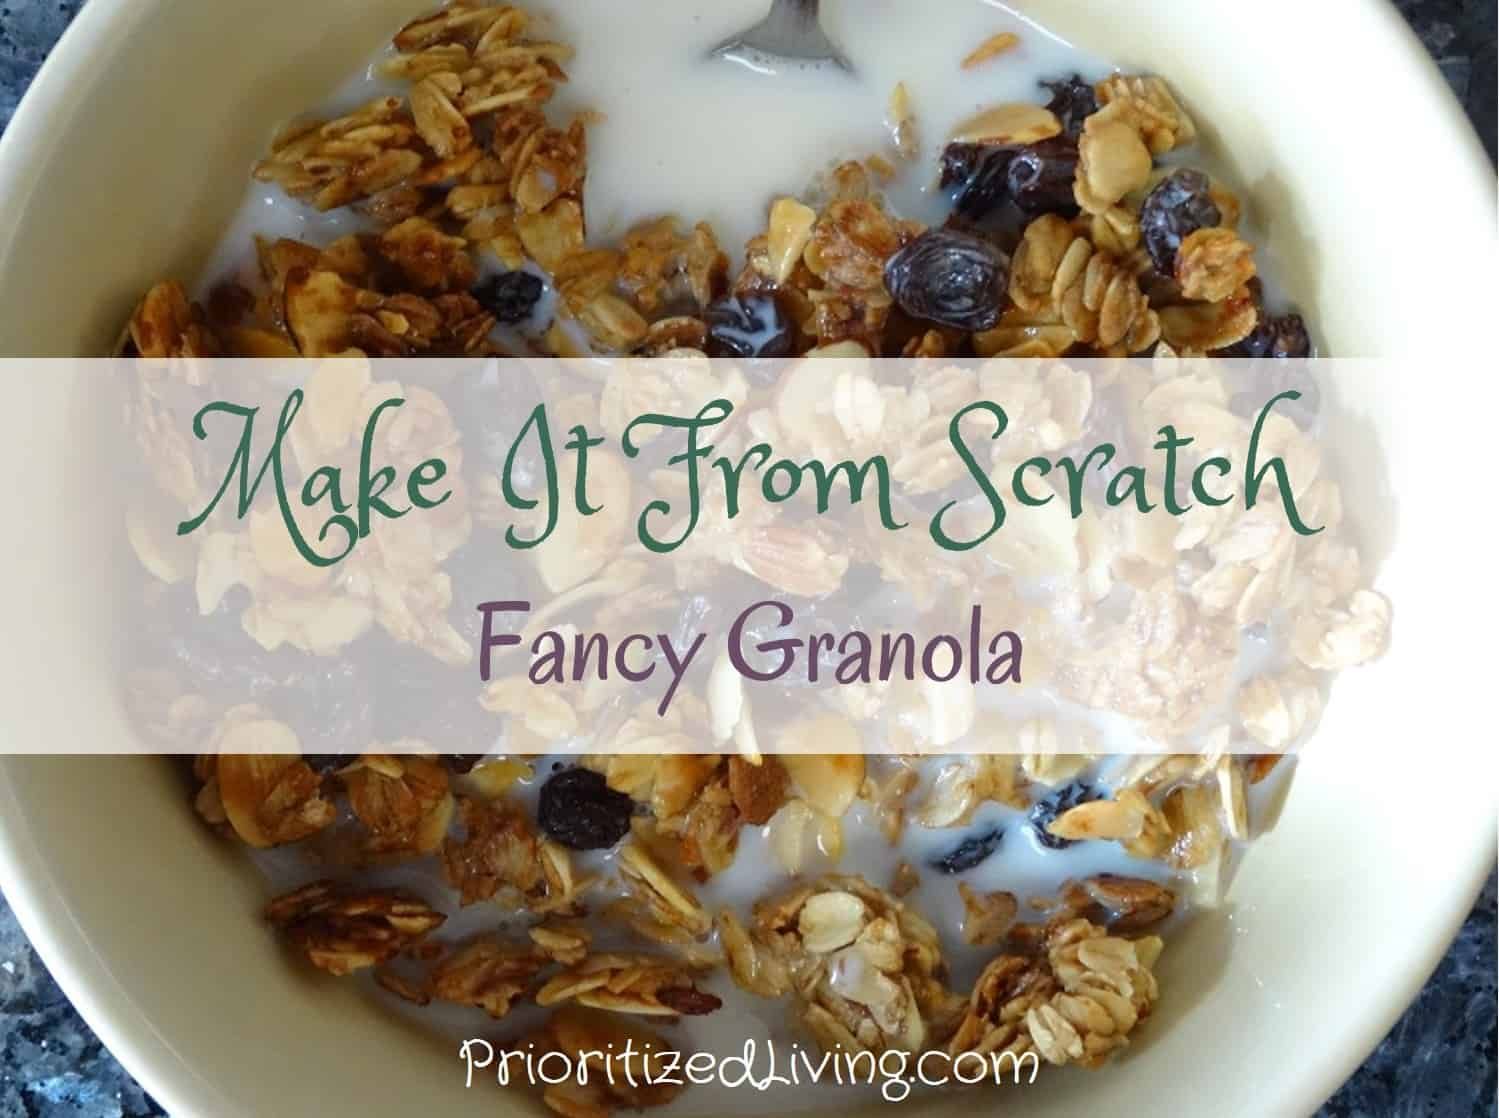 Make It From Scratch - Fancy Granola